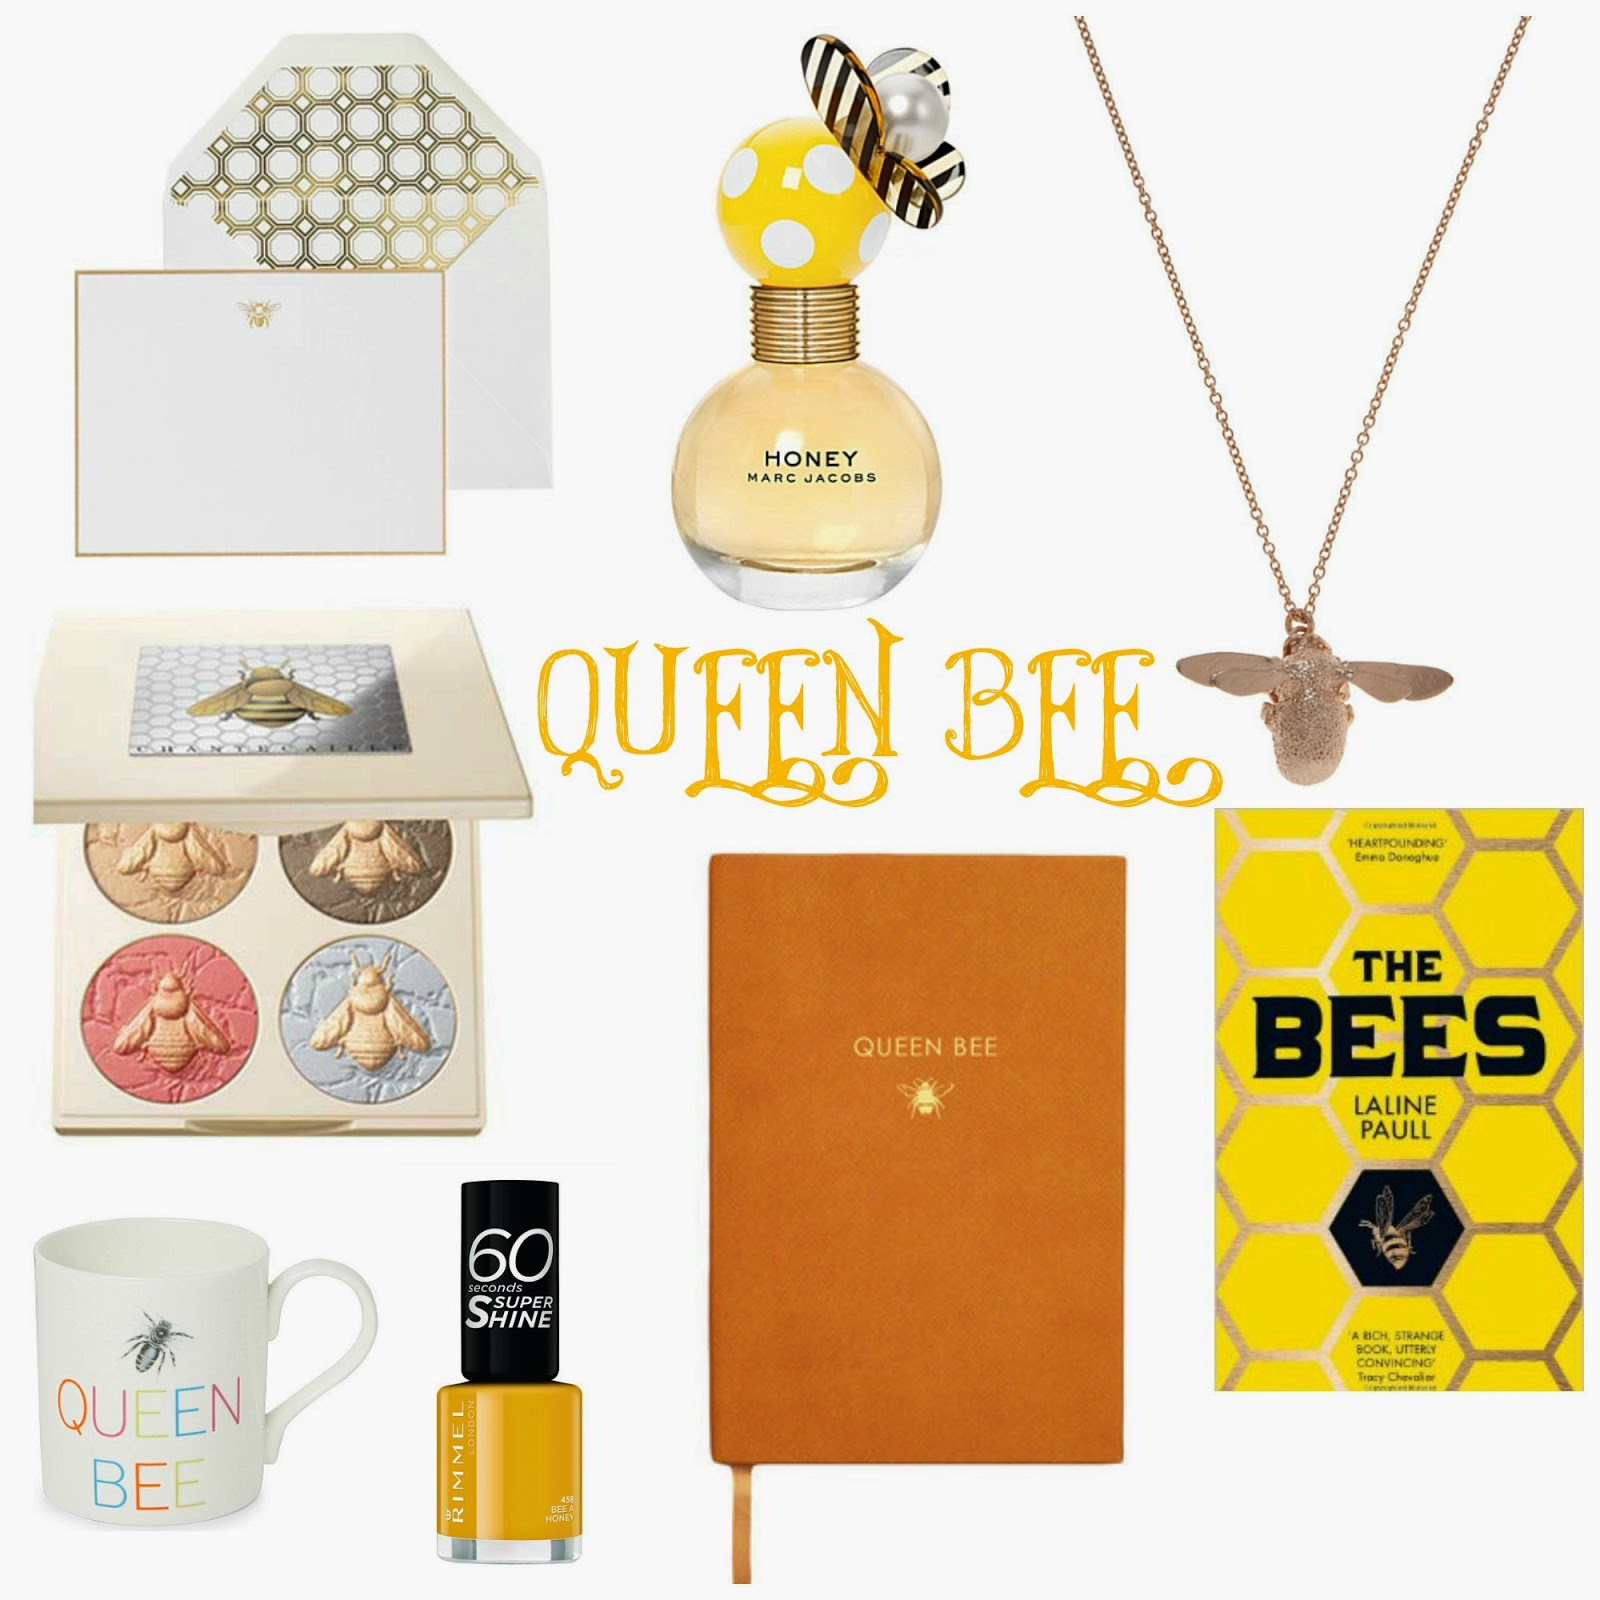 mamasVIB | V. I. BUYS: What the buzz? It's time to Save the VIB's - very important BEES!  | save the bess | bees | bug life  bee charity | JCew | crewcuts | charity tees | bumble bees | the hive | bee sting beauty | selfridges | john  lewis | bugaboo bee | liberty | bee tea towel | alex monroe | bees | bbs buys | bugs | insects | save the bees | mothercare | bee toys | bee beauty buys | bee fashion | bee print | amara | queen bee notepad | queen bee mug | bee bowl | bee cushion | shopping | style | mamasVIb | mothers meeting | event | press show | beauty buys | royal jelly | amber nectar | bee sting | honey | marc jacobs | kids fashion | mmas style | shopping buys | themes buys | bee | bumble | bee hotels | bee hives | bee keeper | books | the hive | mamasvib